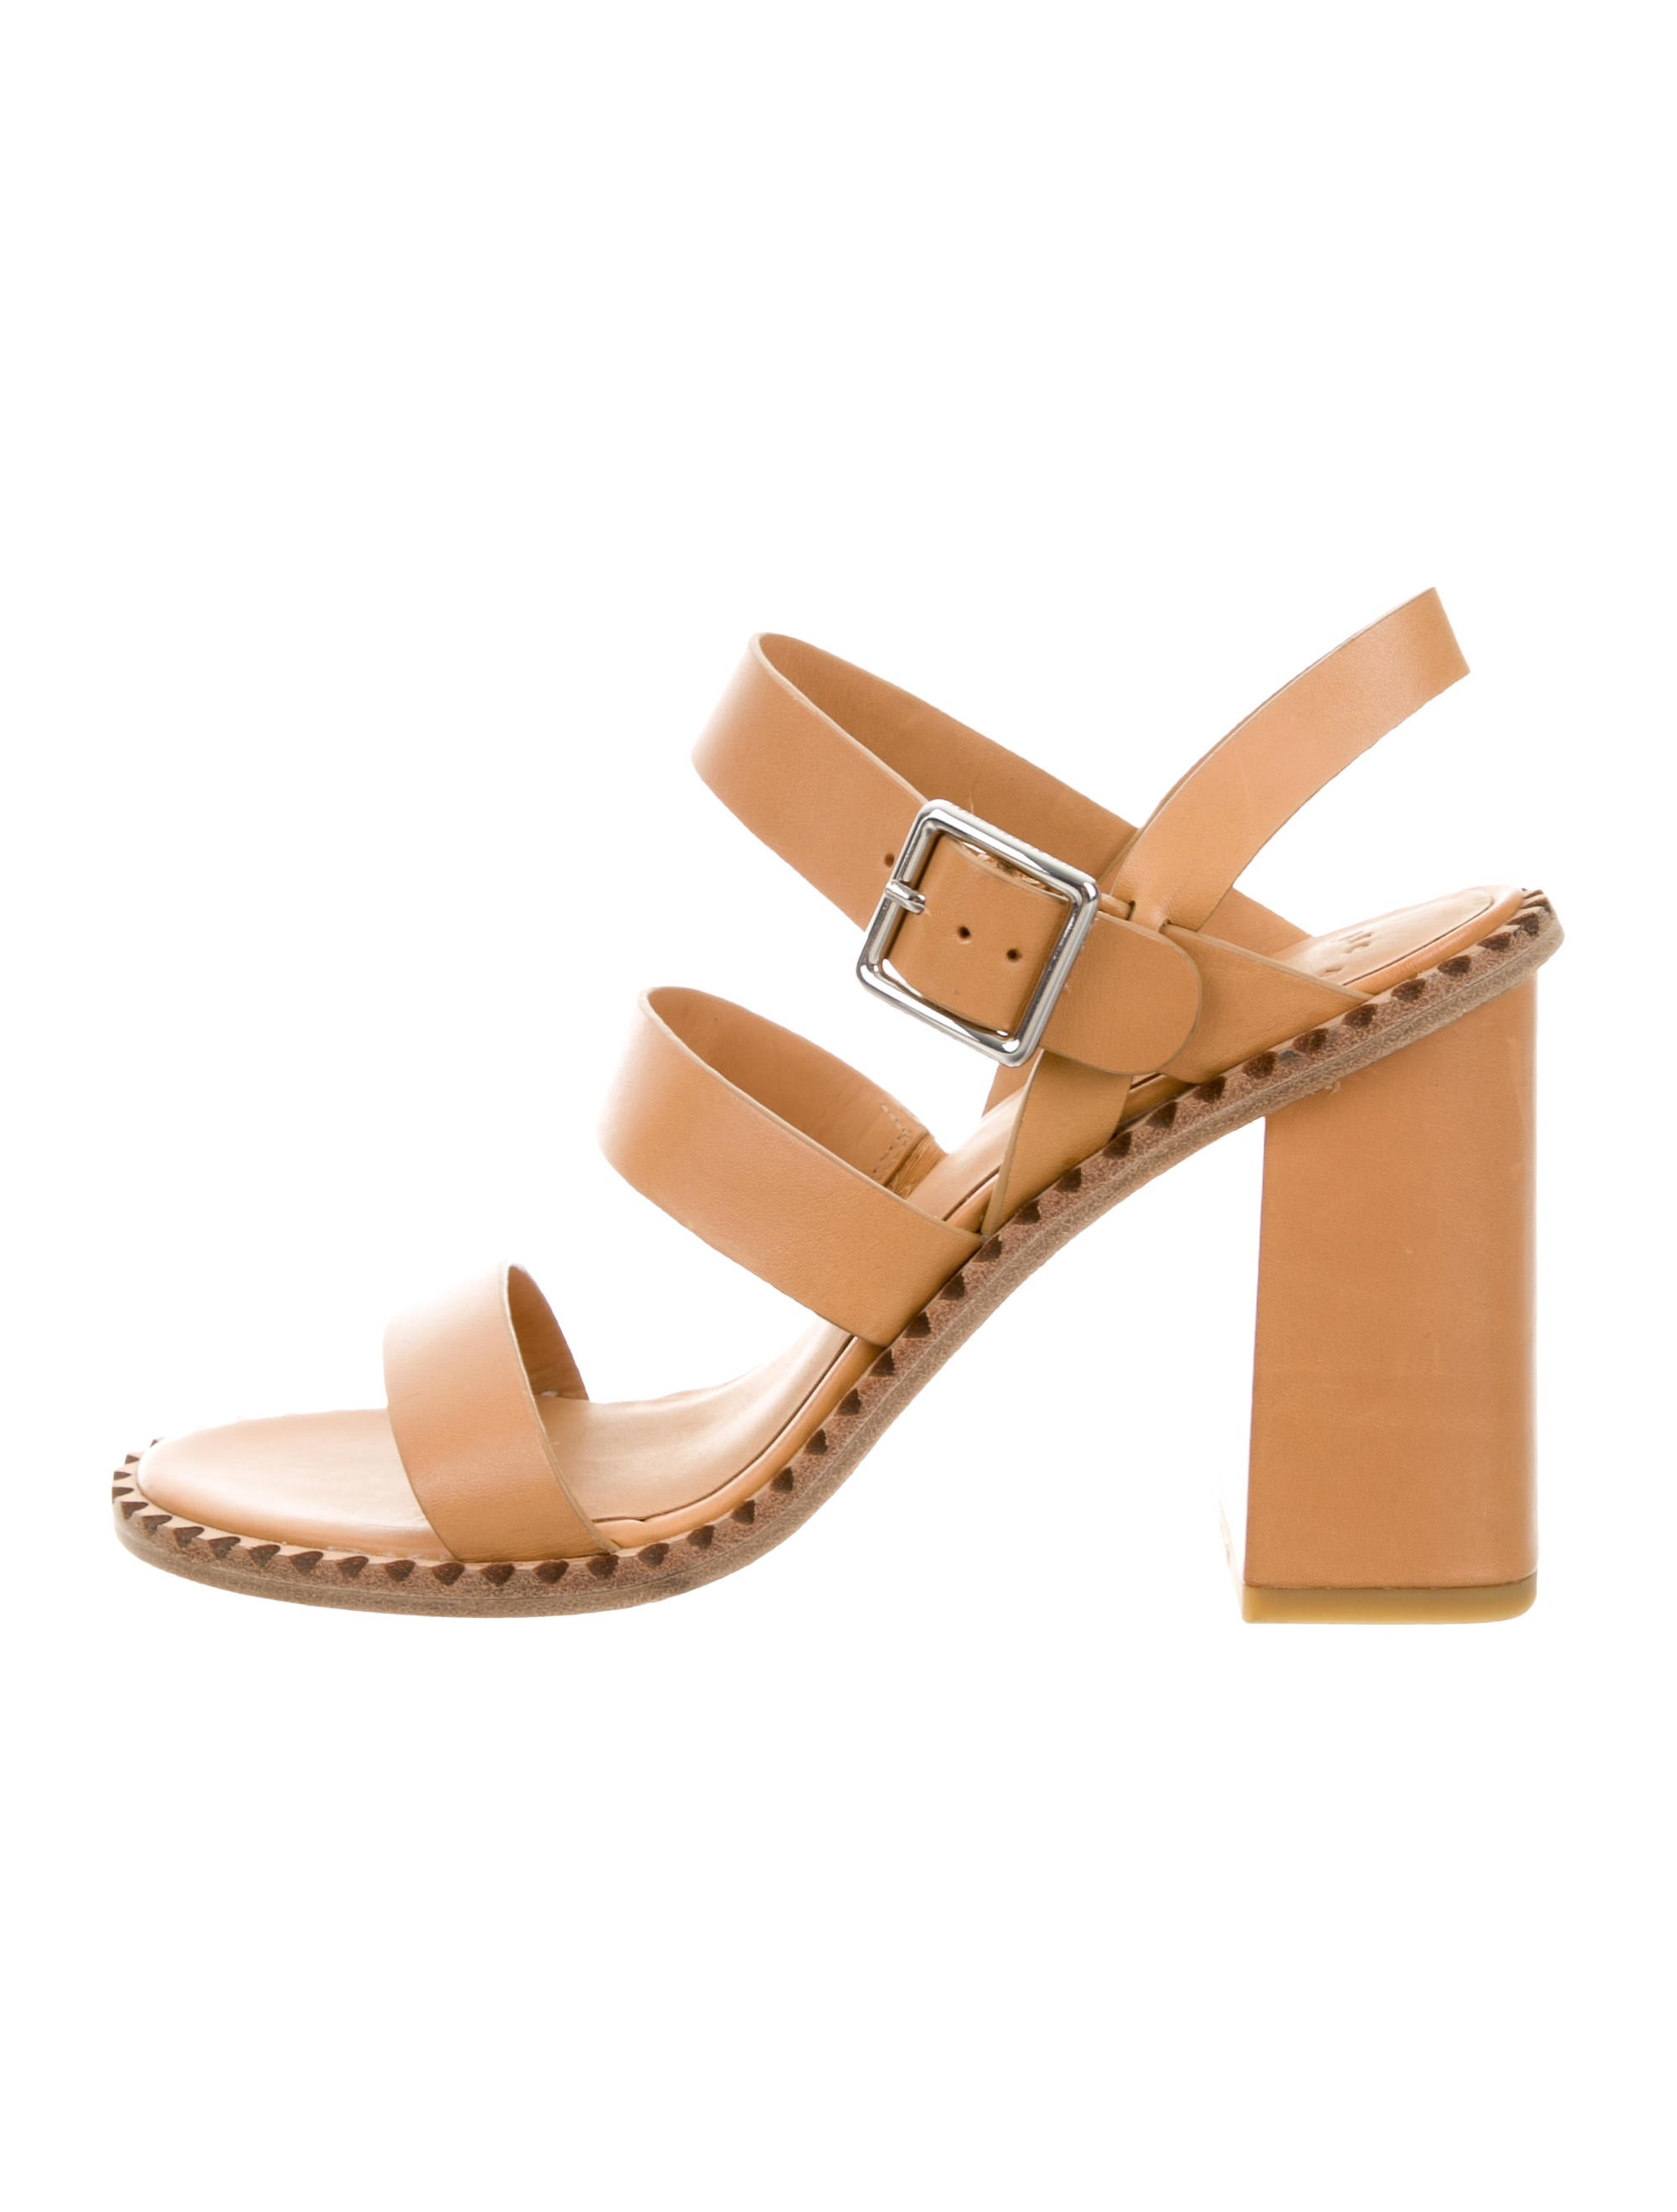 Marc by Marc Jacobs Leather Multistrap Sandals cheap low shipping fee cheap best sale clearance footlocker buy cheap real qcn0Zagp